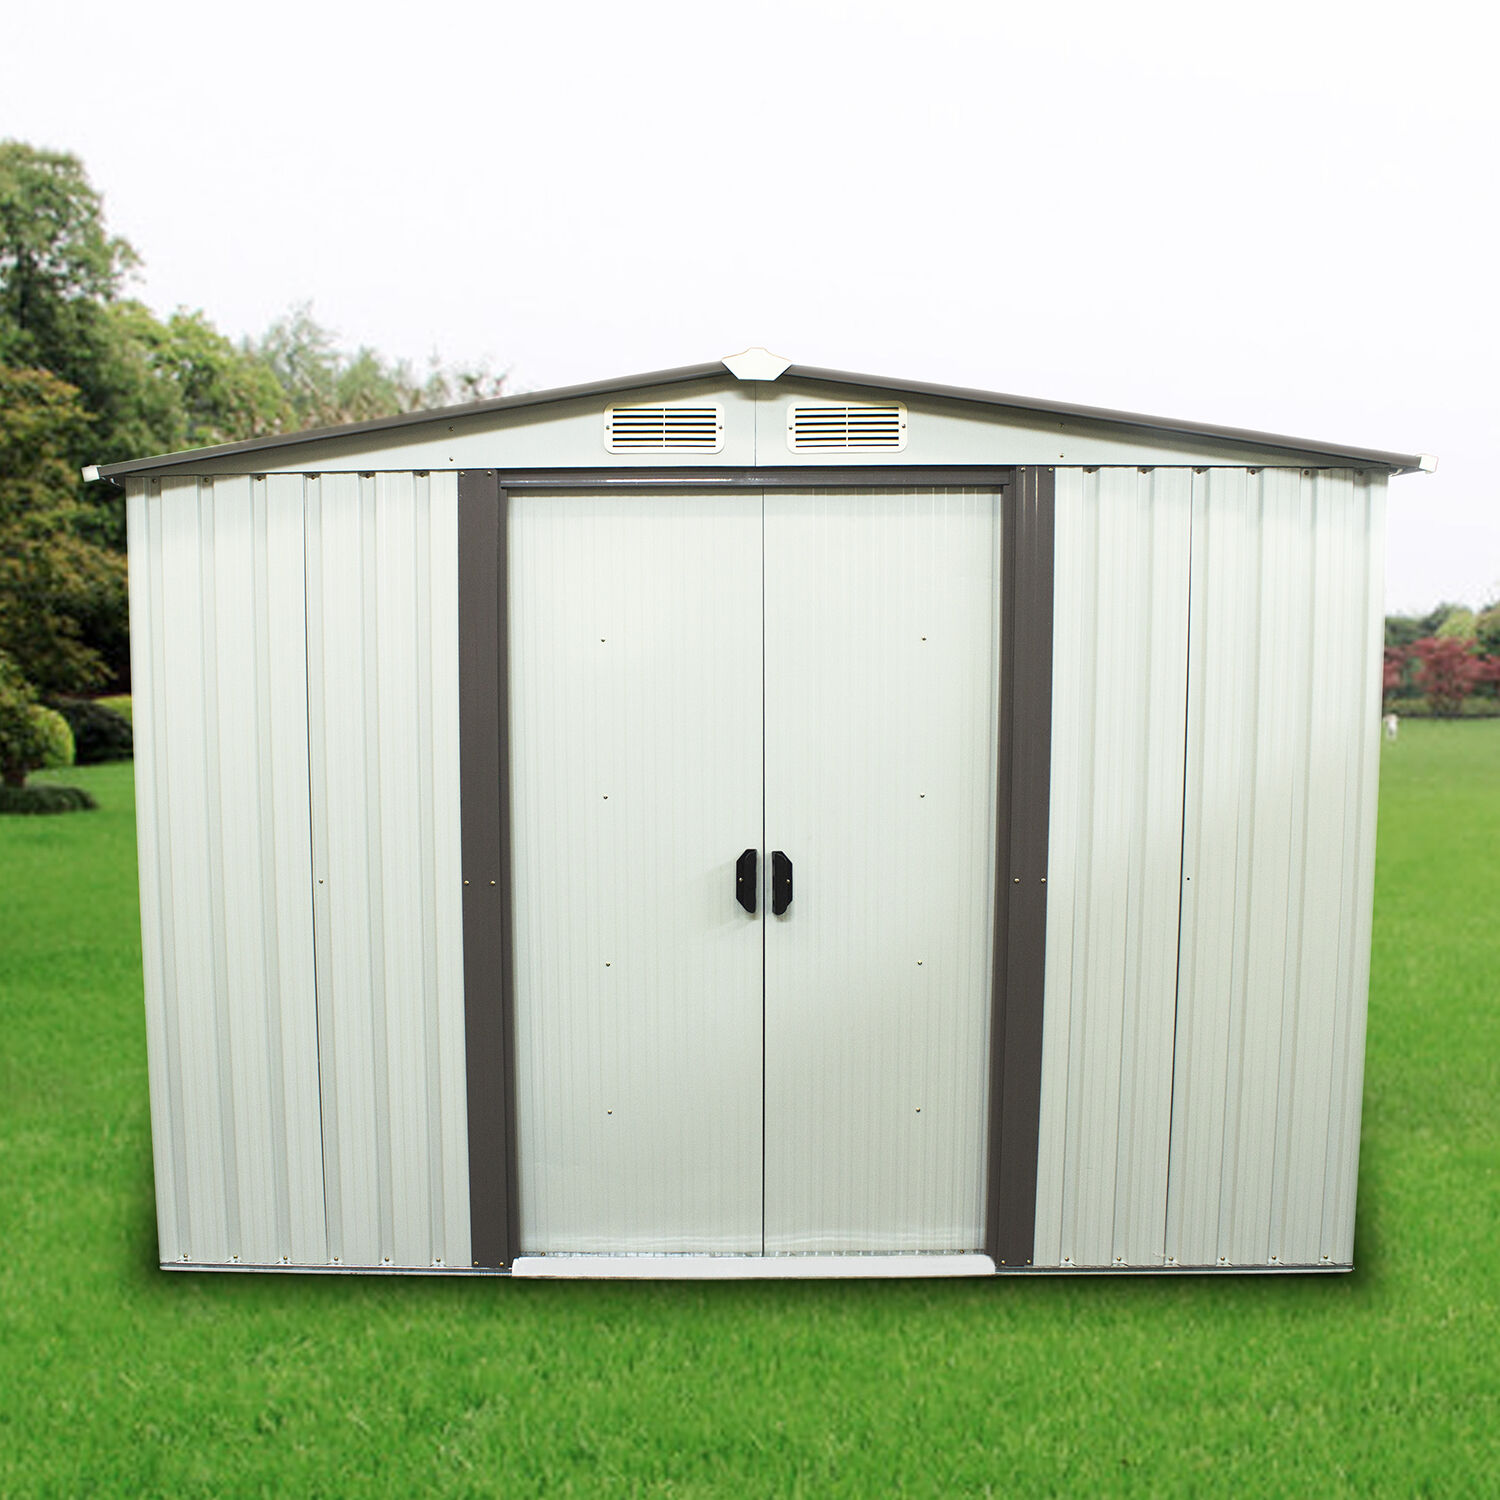 8x8 Outdoor Storage Shed Steel Garden Utility Tool Backyard Lawn